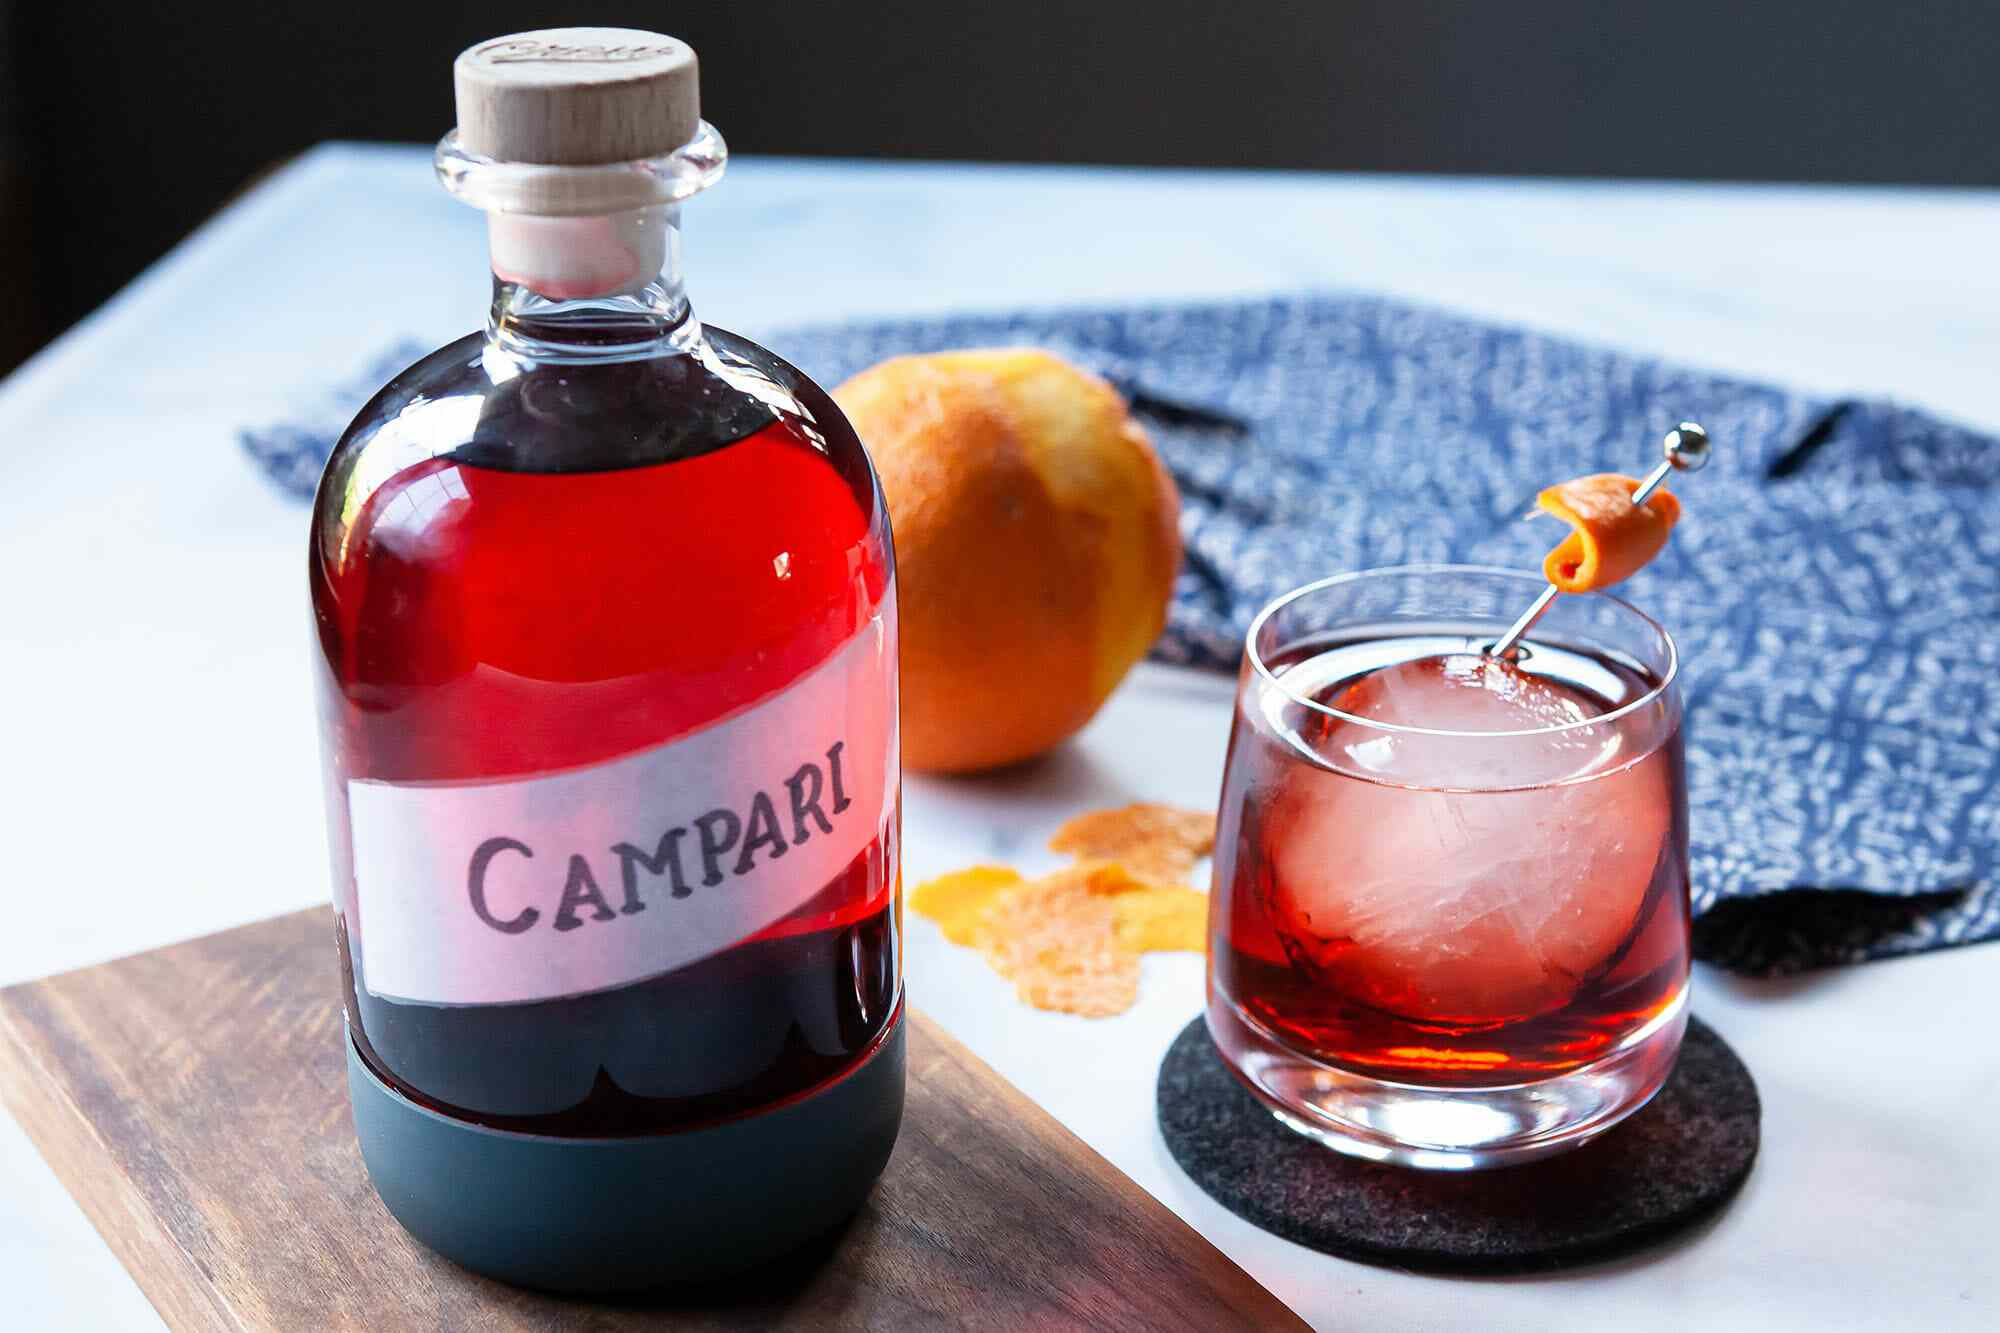 Glass jar filled with Campari substitute. A whiskey glass with a cocktail inside is to the right.